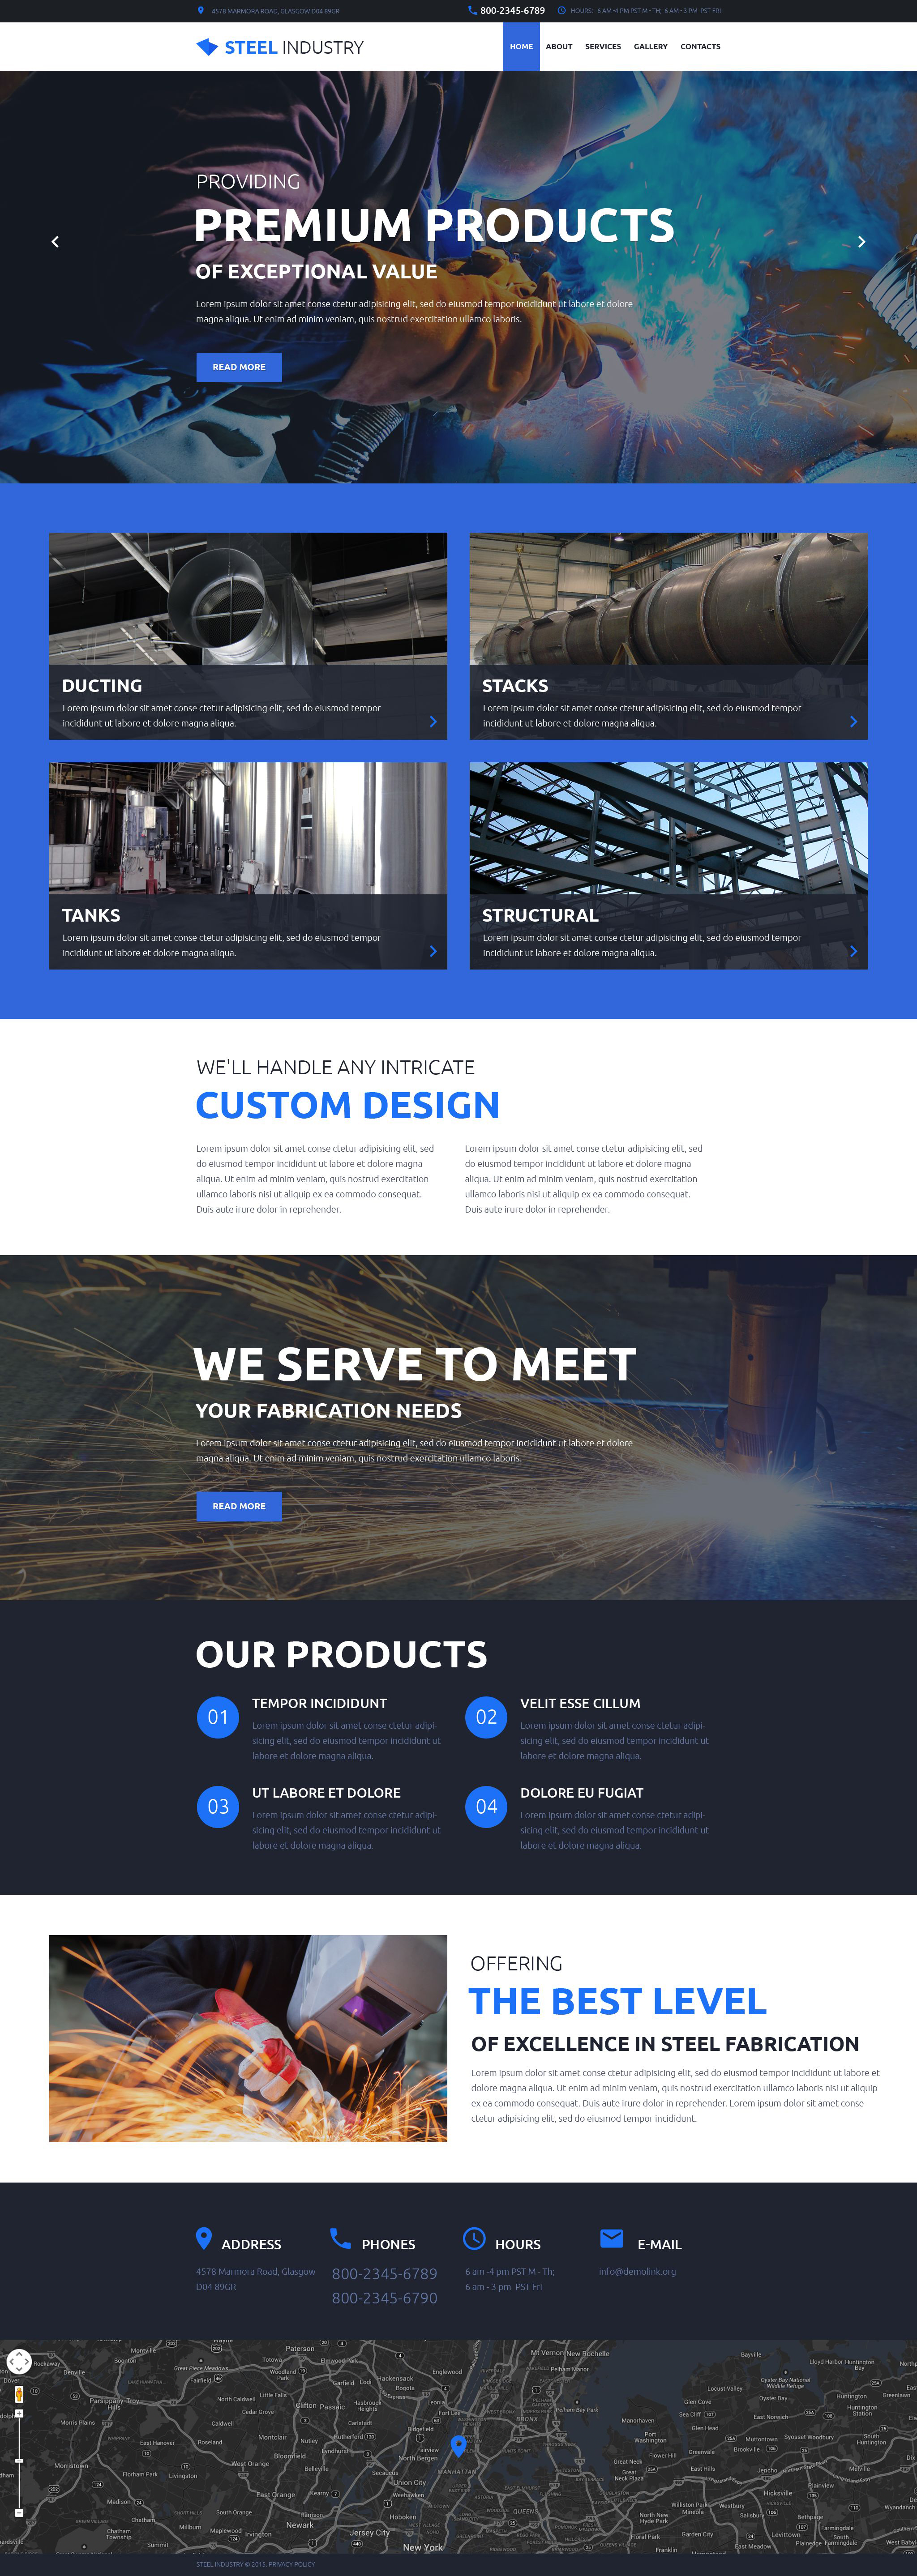 Steel Industry Website Template - screenshot